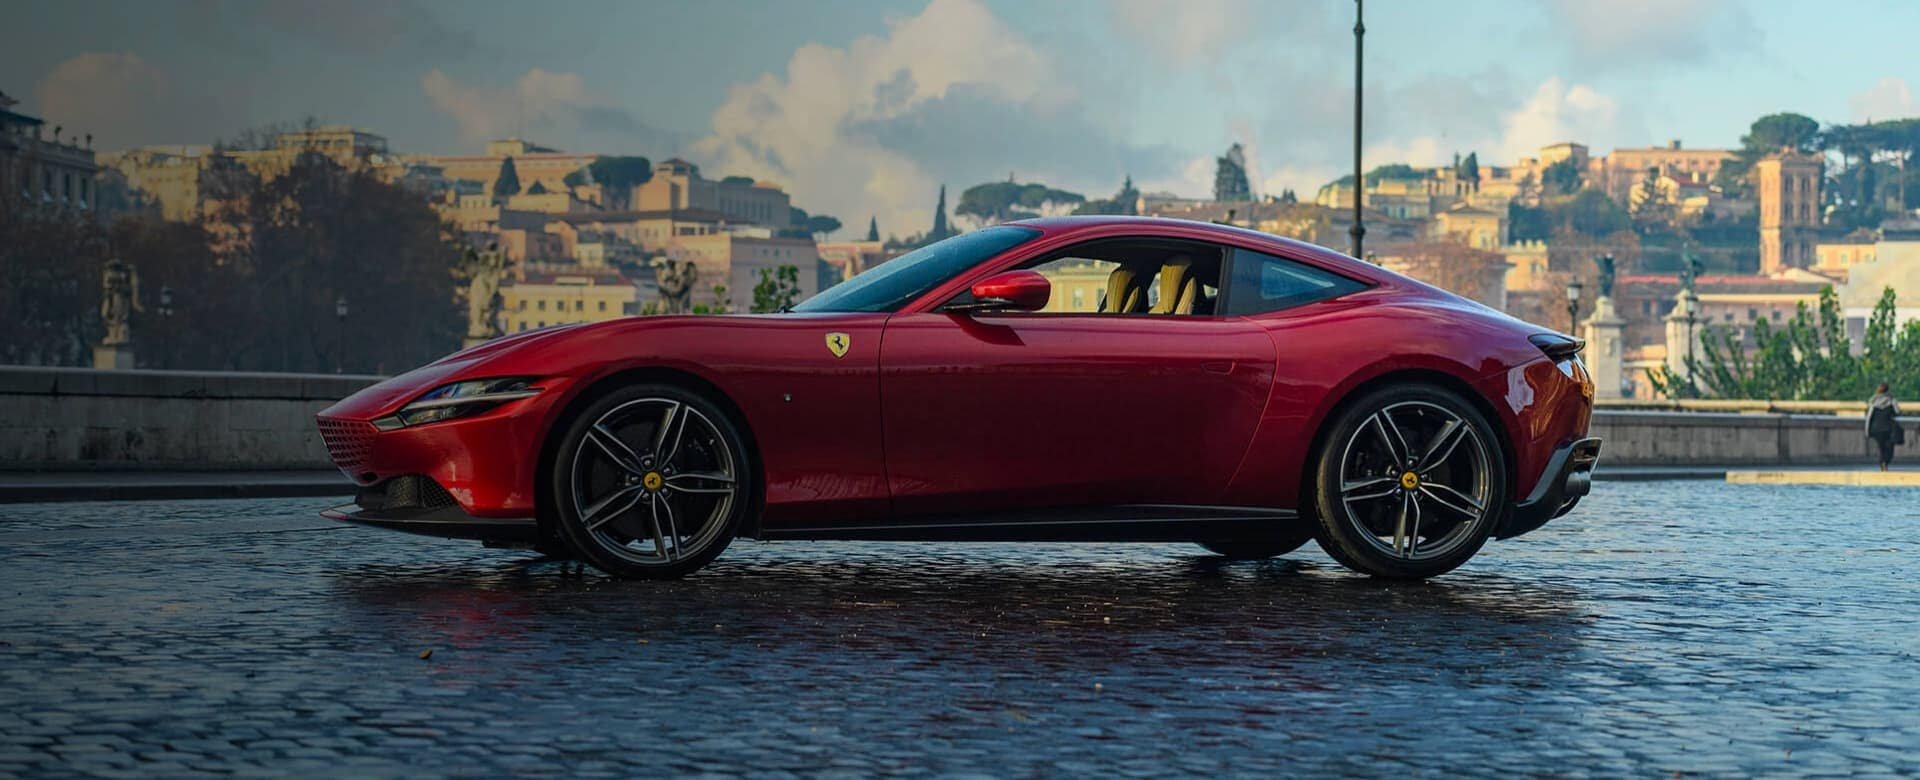 Red Ferrari on a damp cobblestone street in front of an Italian town